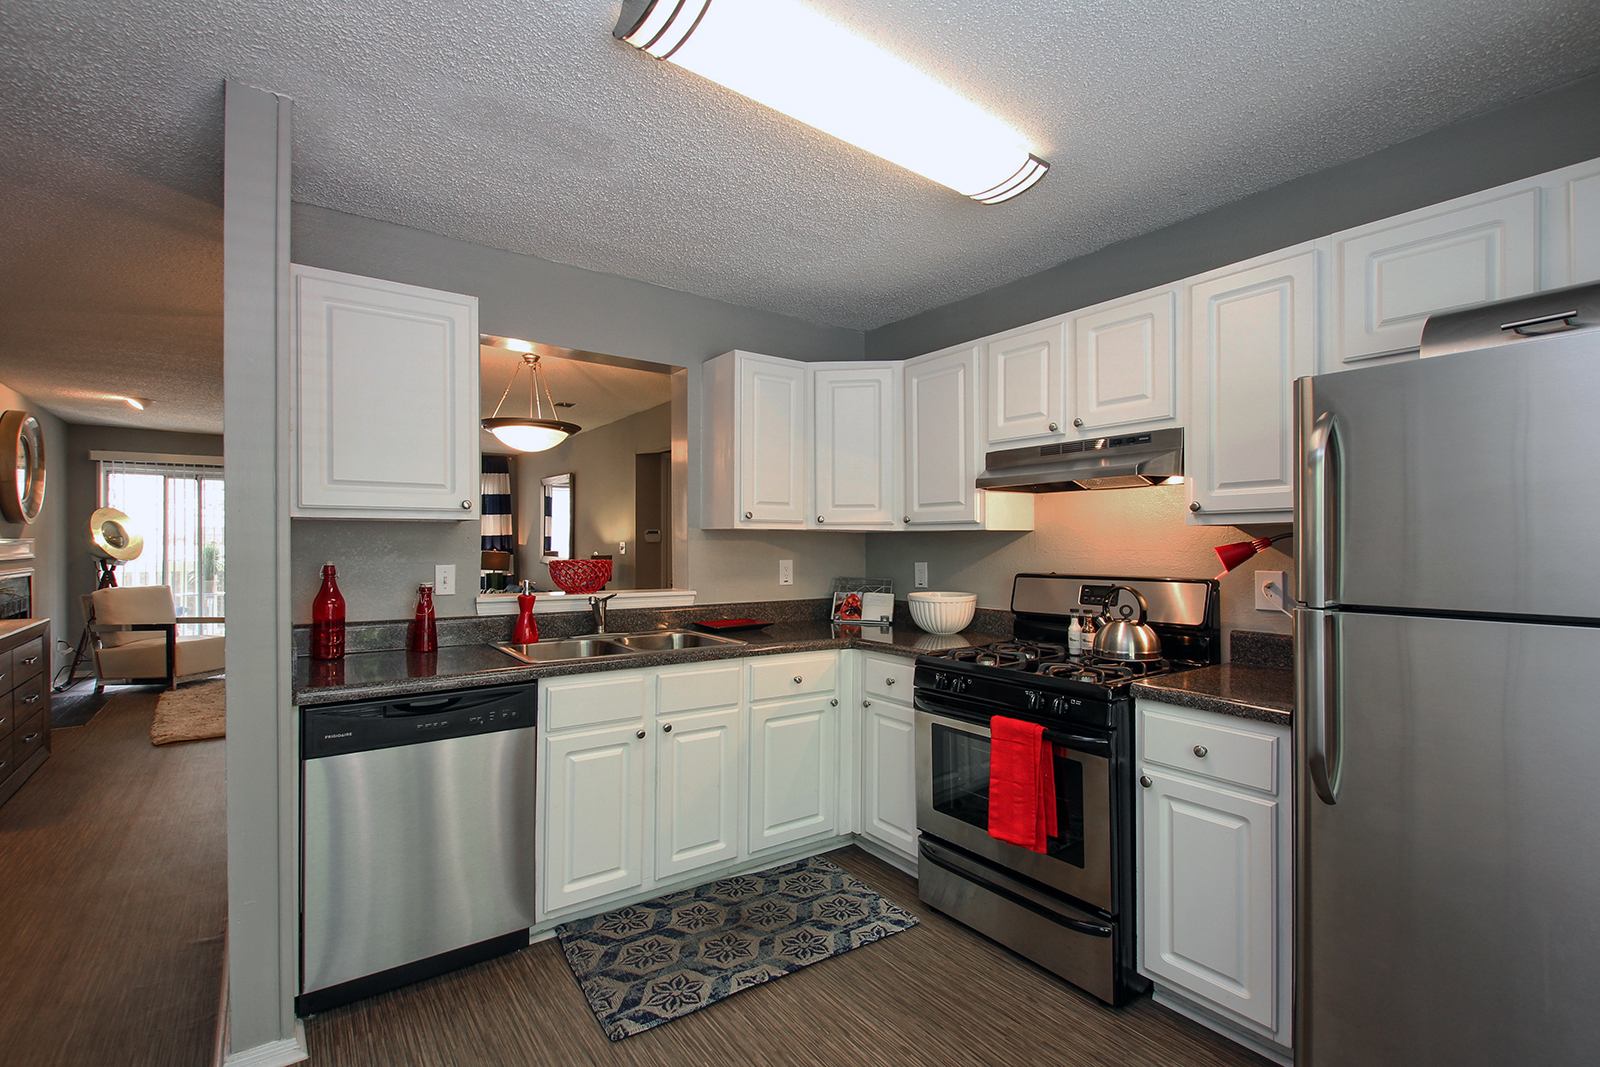 7889 Roswell Rd 1 2 Beds Apartment For Rent Photo Gallery 1